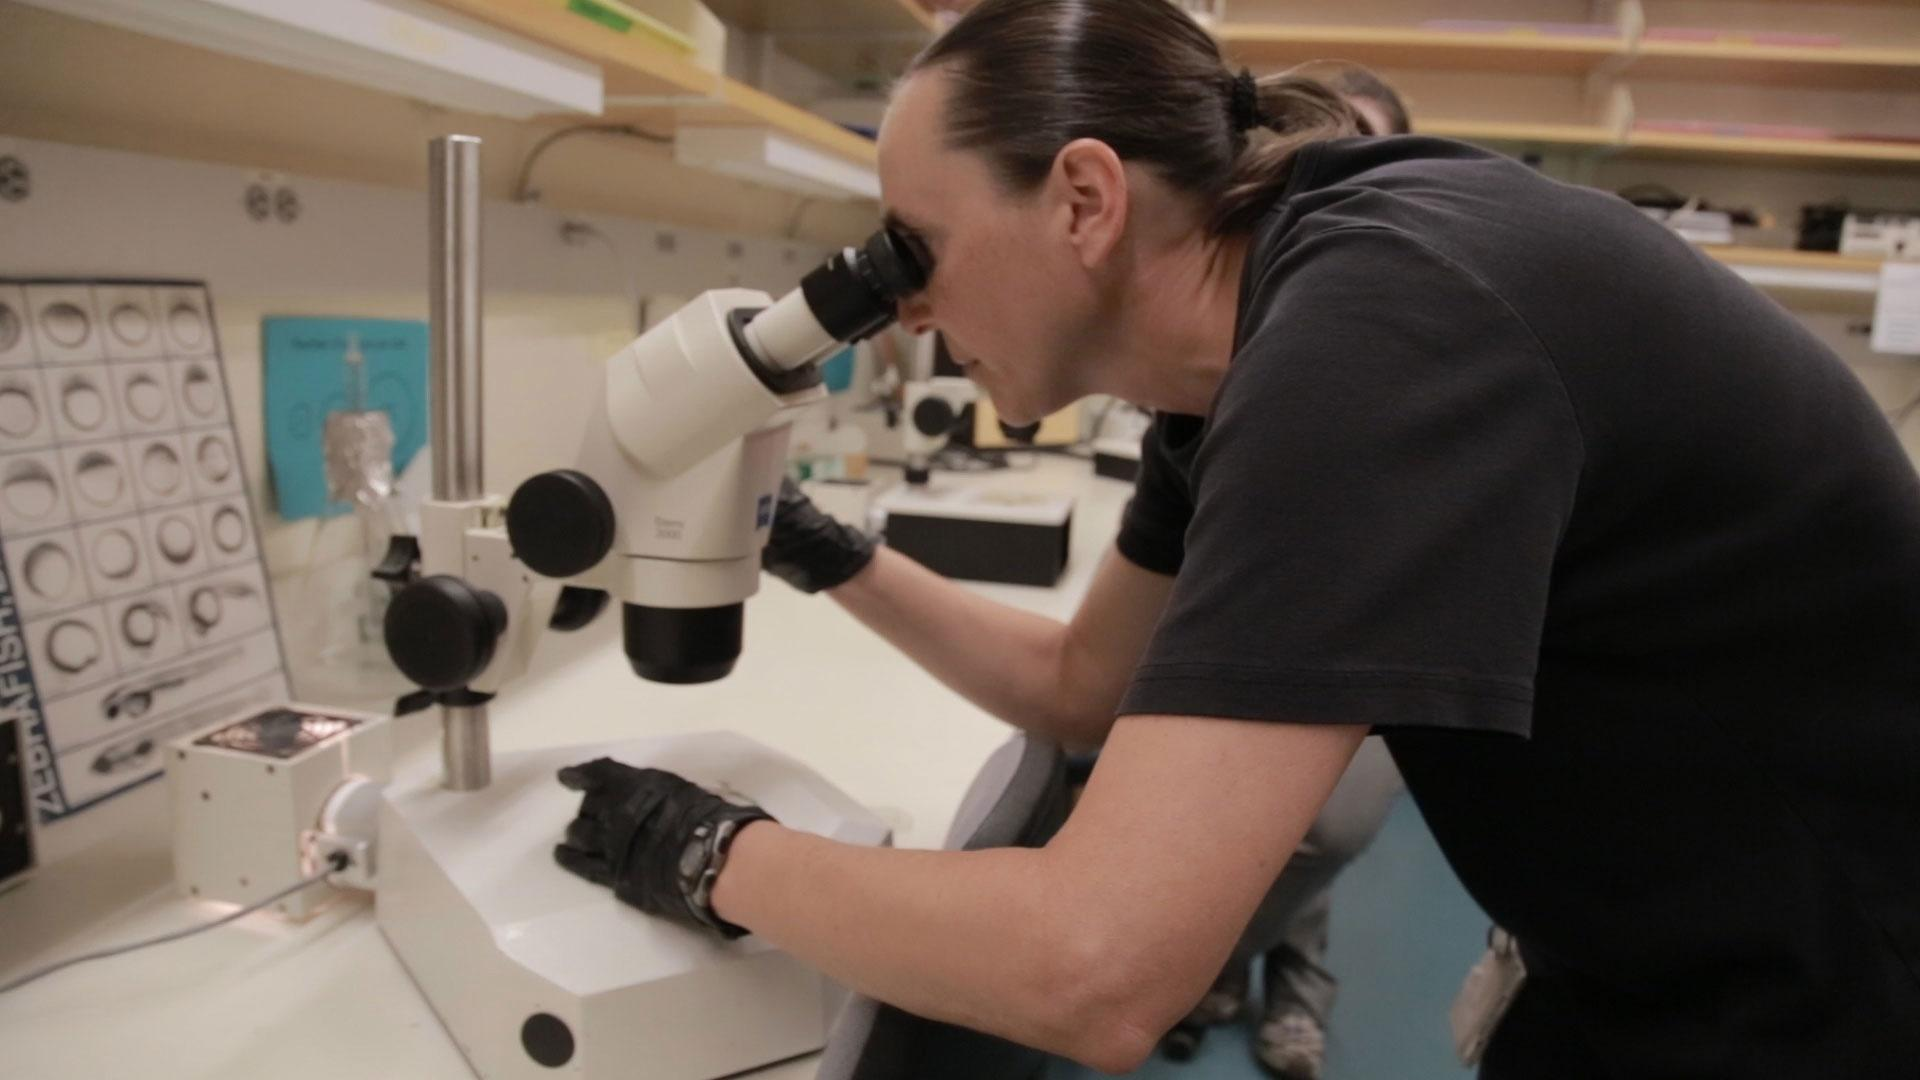 The Dig: Zebrafish in the Lab